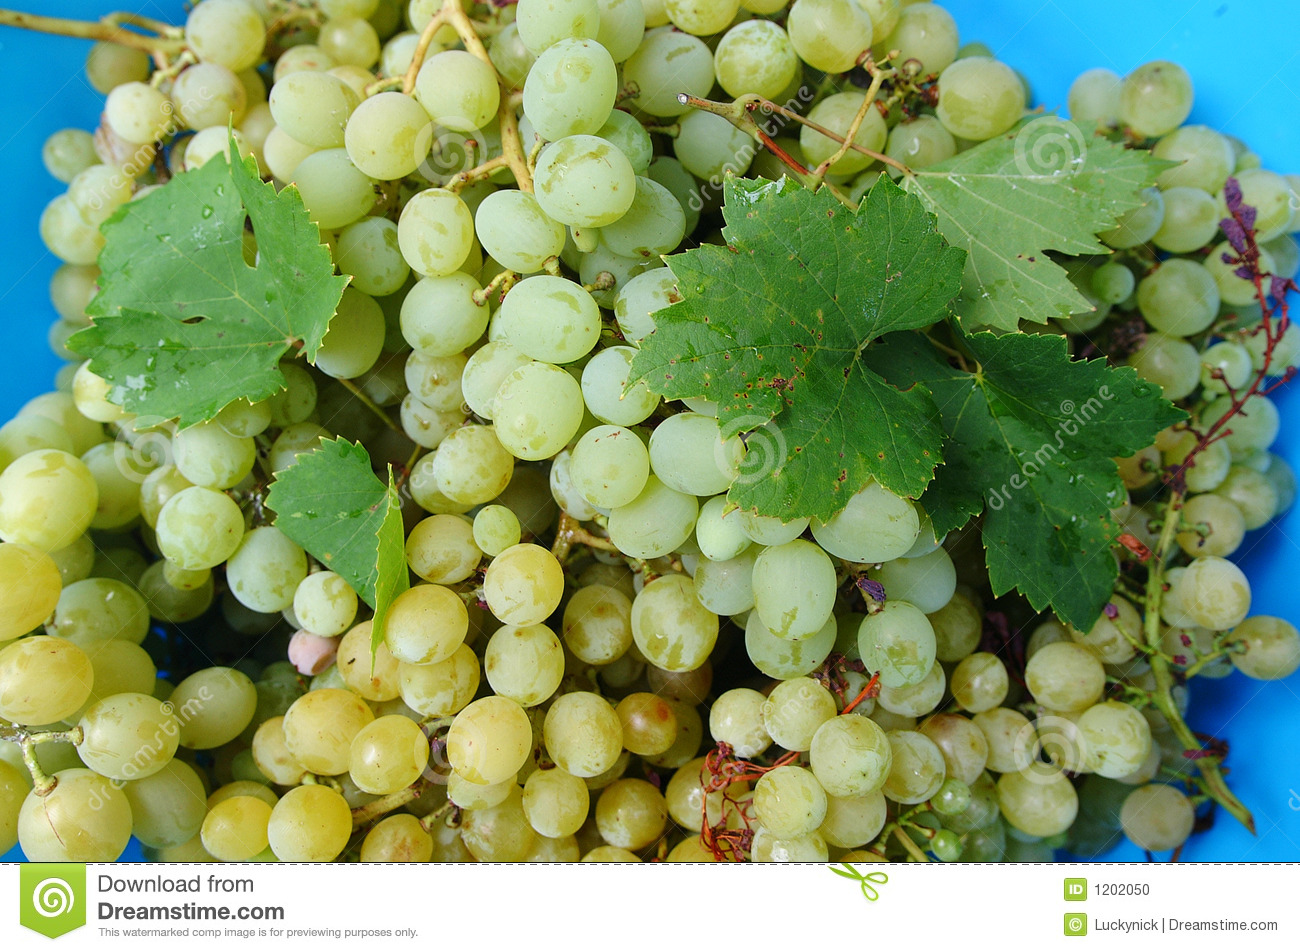 Table grapes and leaves